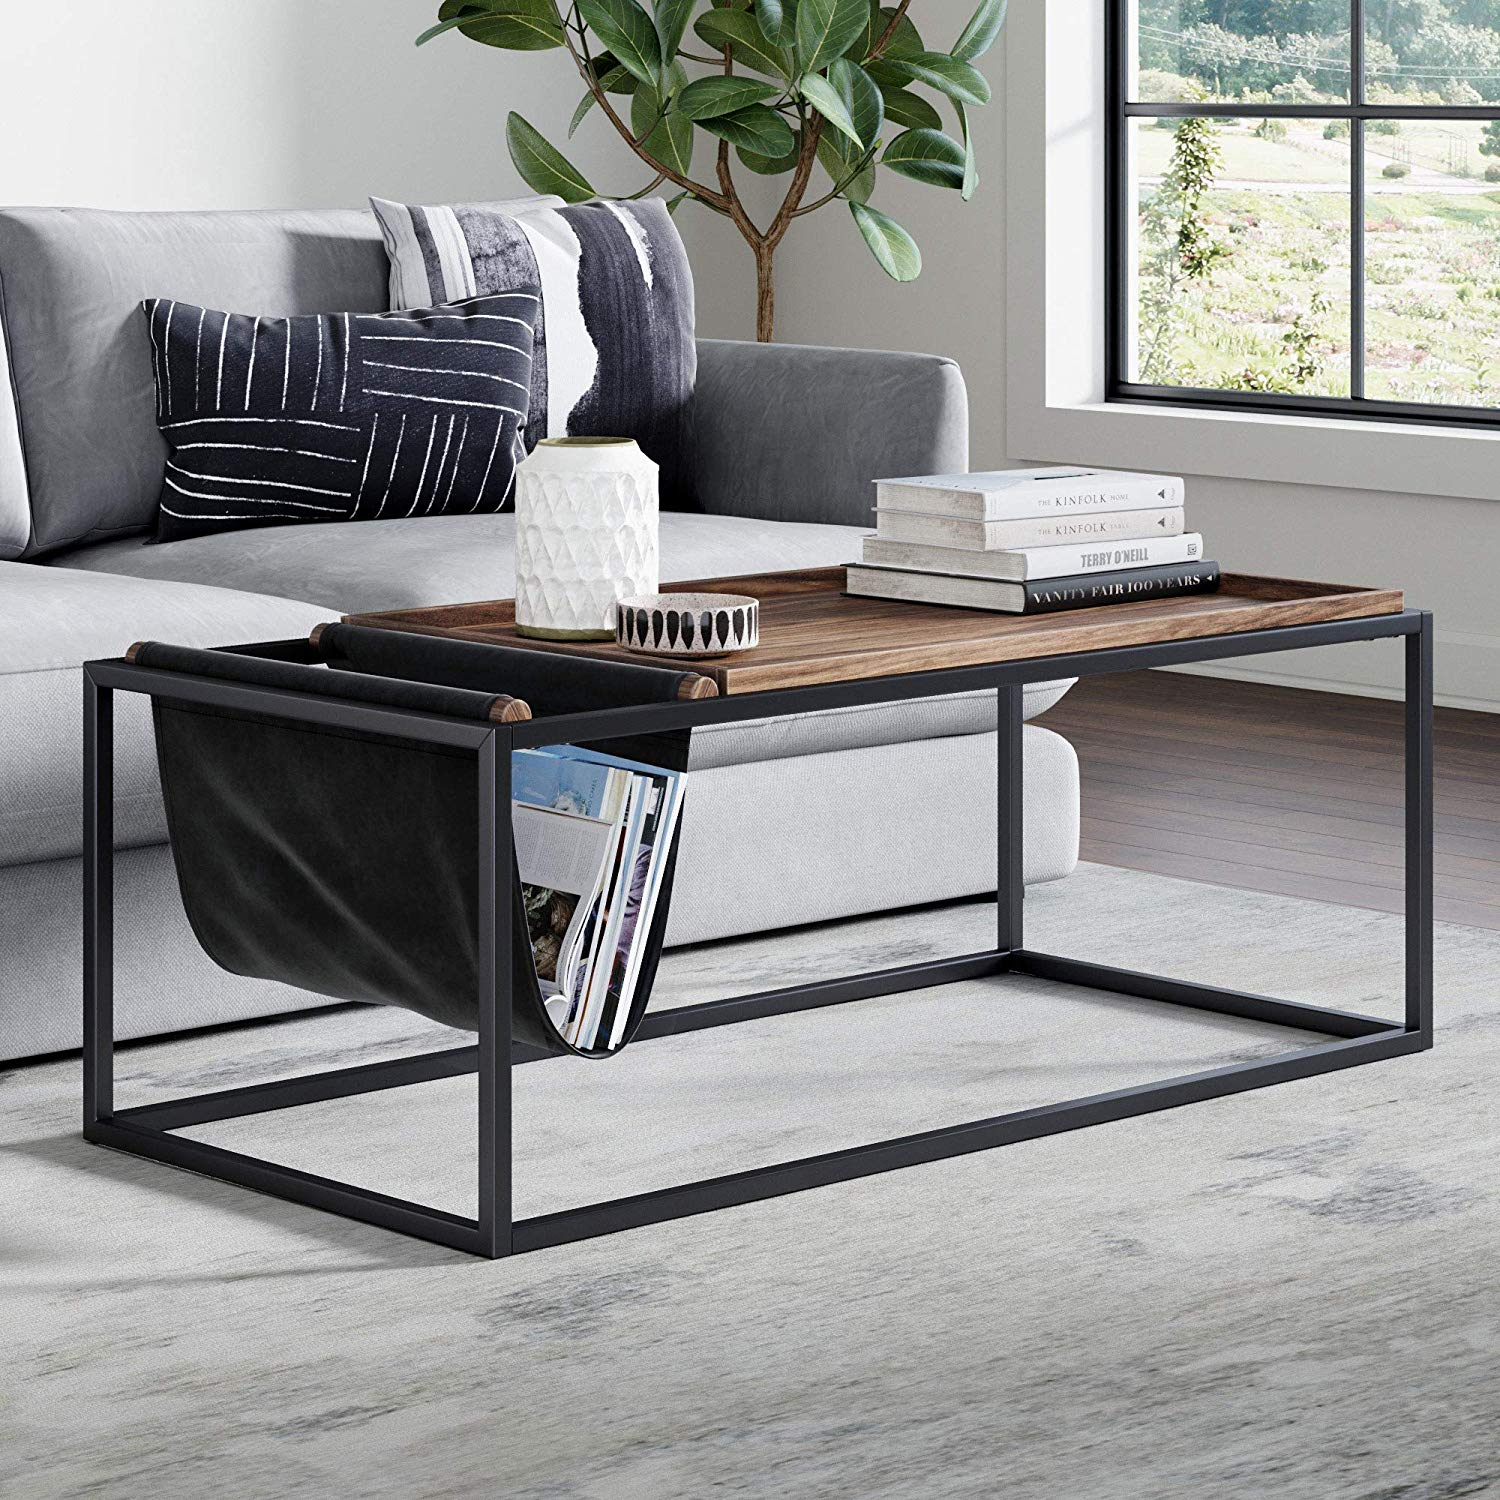 Picture of: 51 Rectangle Coffee Tables That Stand Out With Style And Functionality